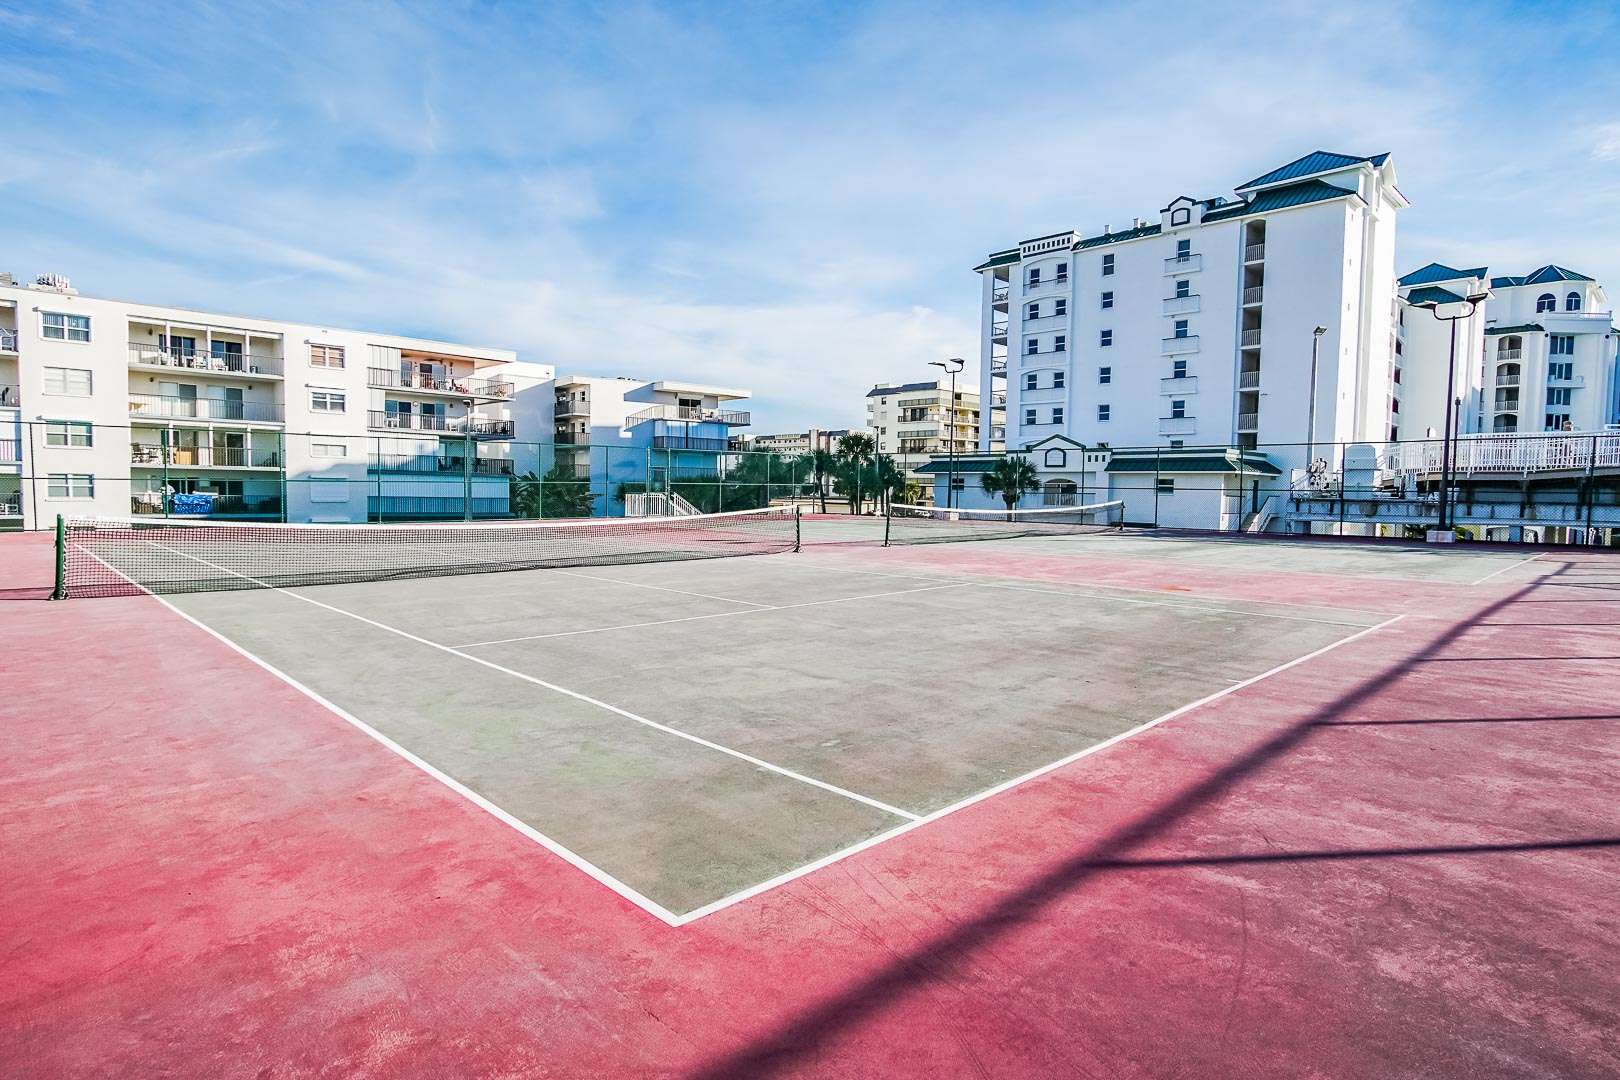 An expansive tennis court at VRI's The Resort on Cocoa Beach in Florida.